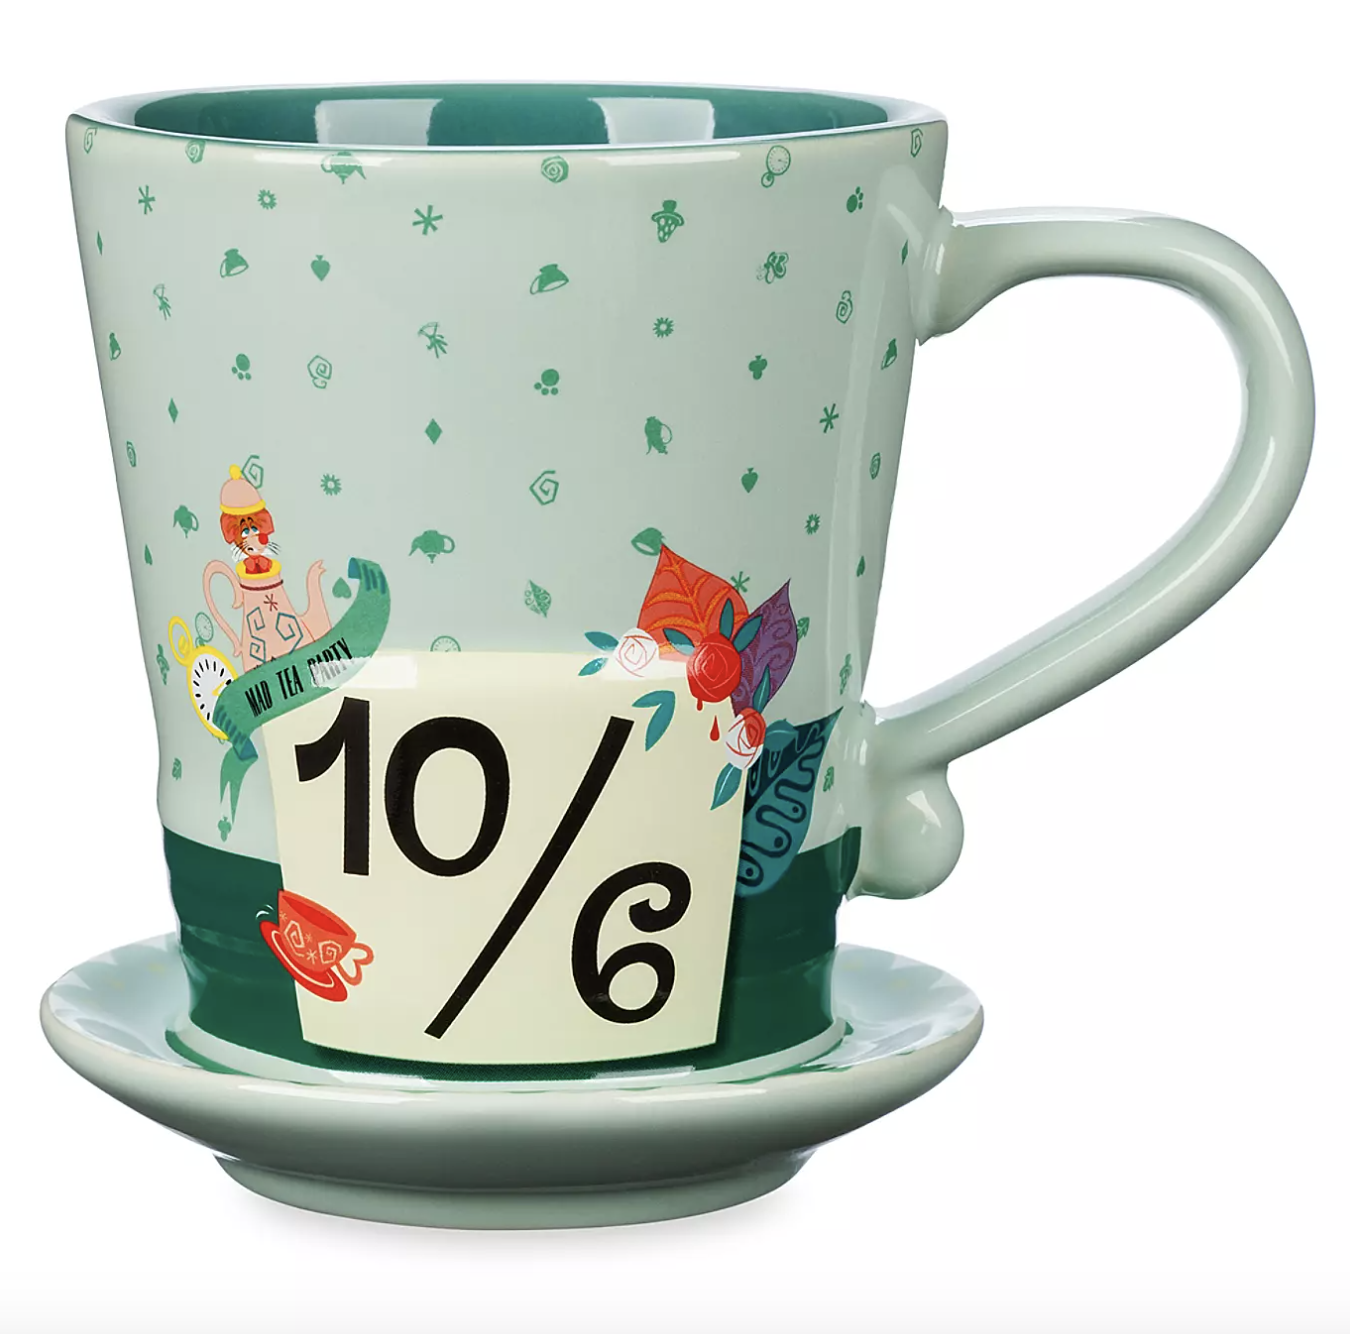 the mug, which is shades of green, has a sculpted hat-shaped design, screen art detailing, and contrast interior